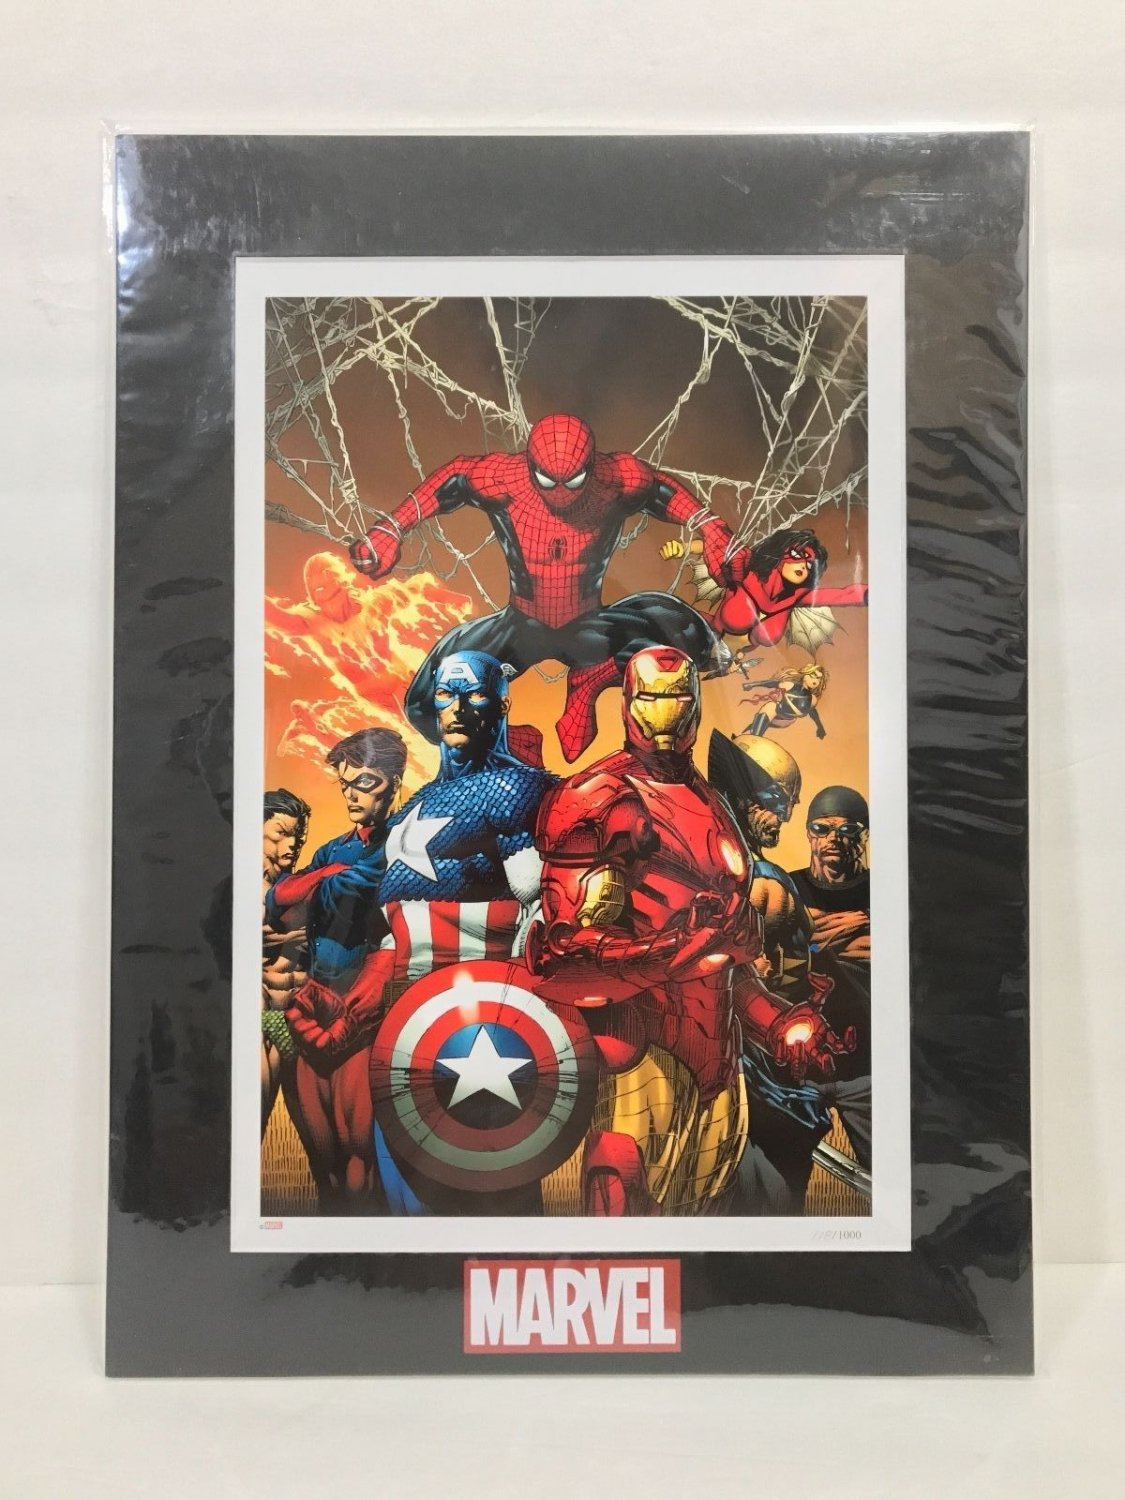 Disney Parks Authentic Marvel Lithograph Print Limited Edition Enforcers New